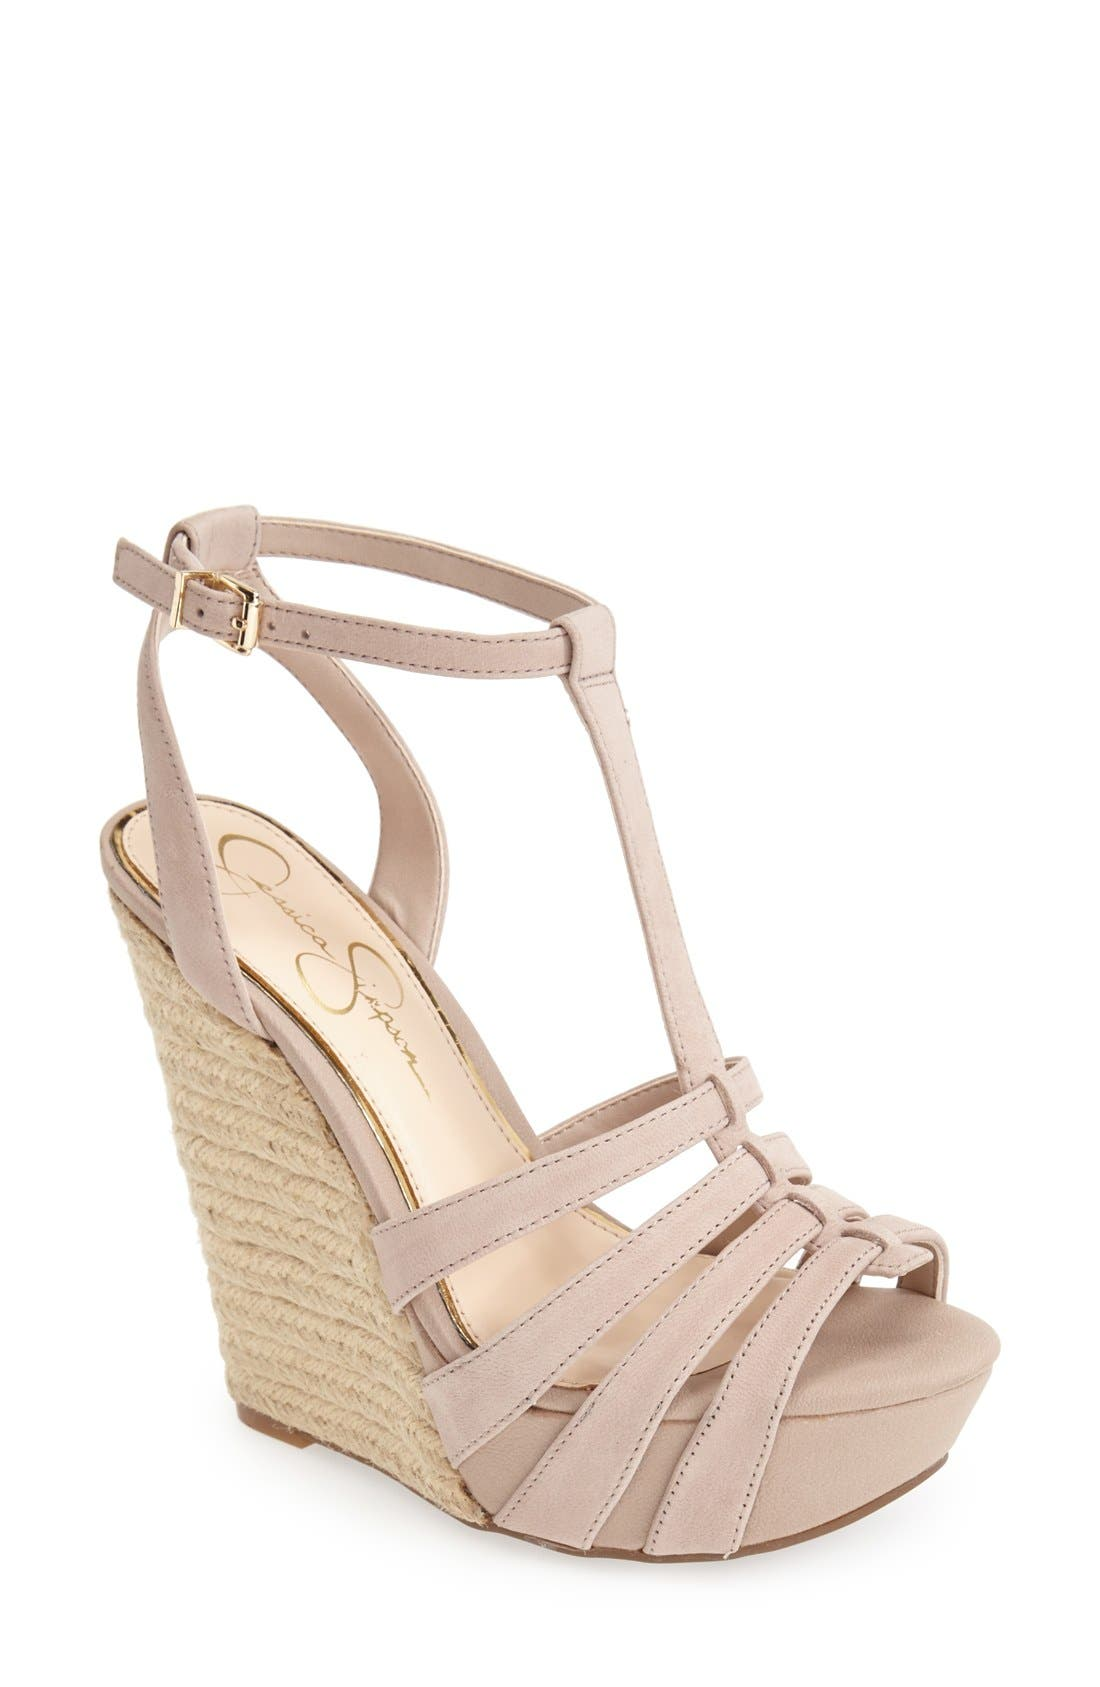 Alternate Image 1 Selected - Jessica Simpson 'Bristol' Ankle Strap Platform Wedge Sandal (Women)